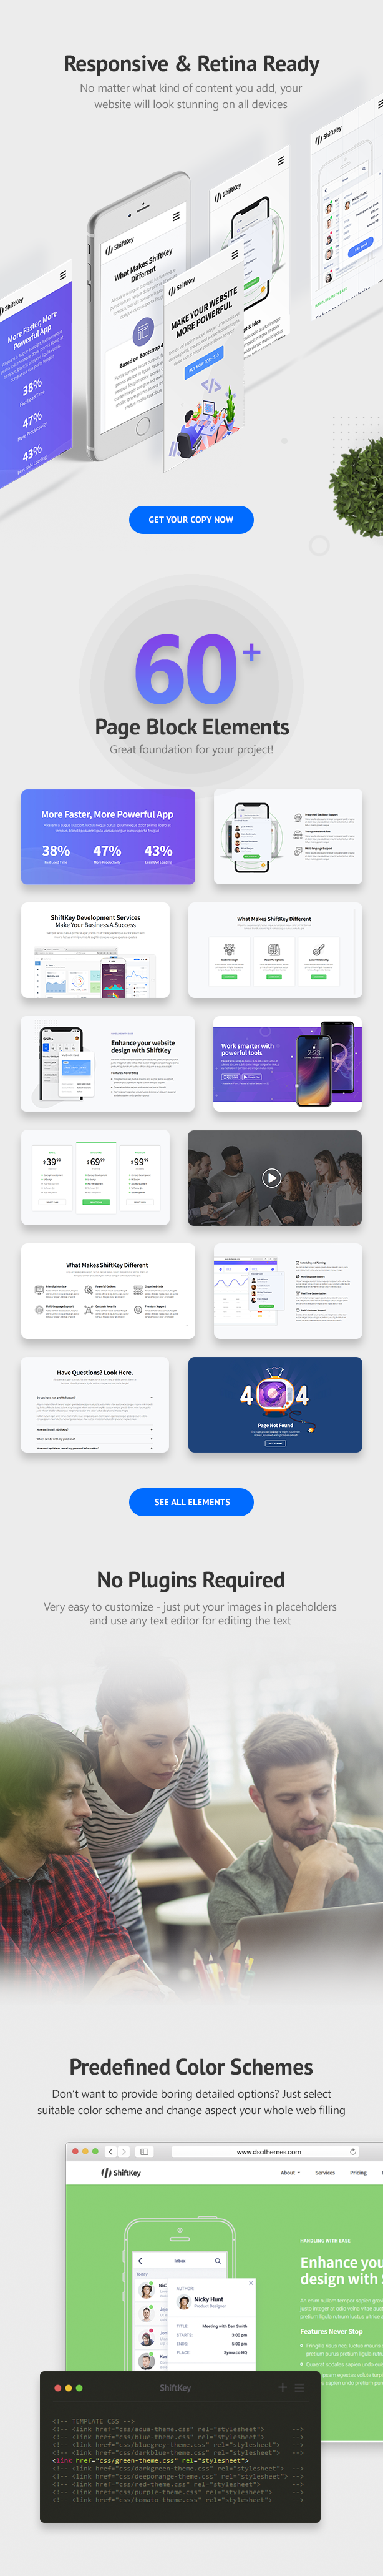 ShiftKey - Landing Pages WordPress Theme - 4